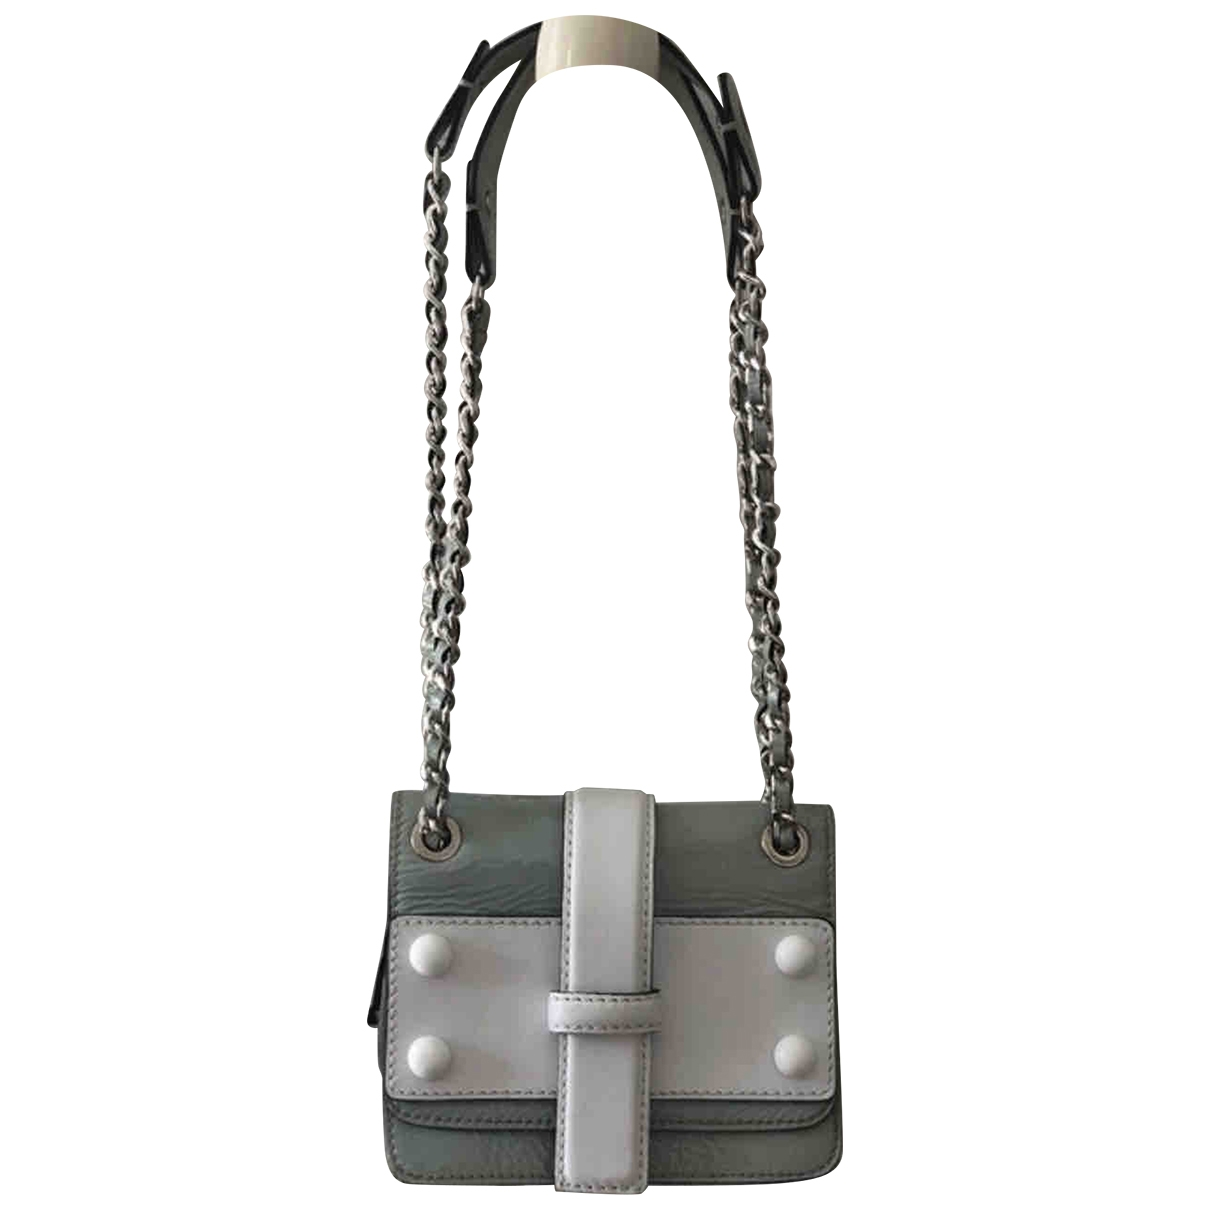 Tara Jarmon \N Green Leather handbag for Women \N